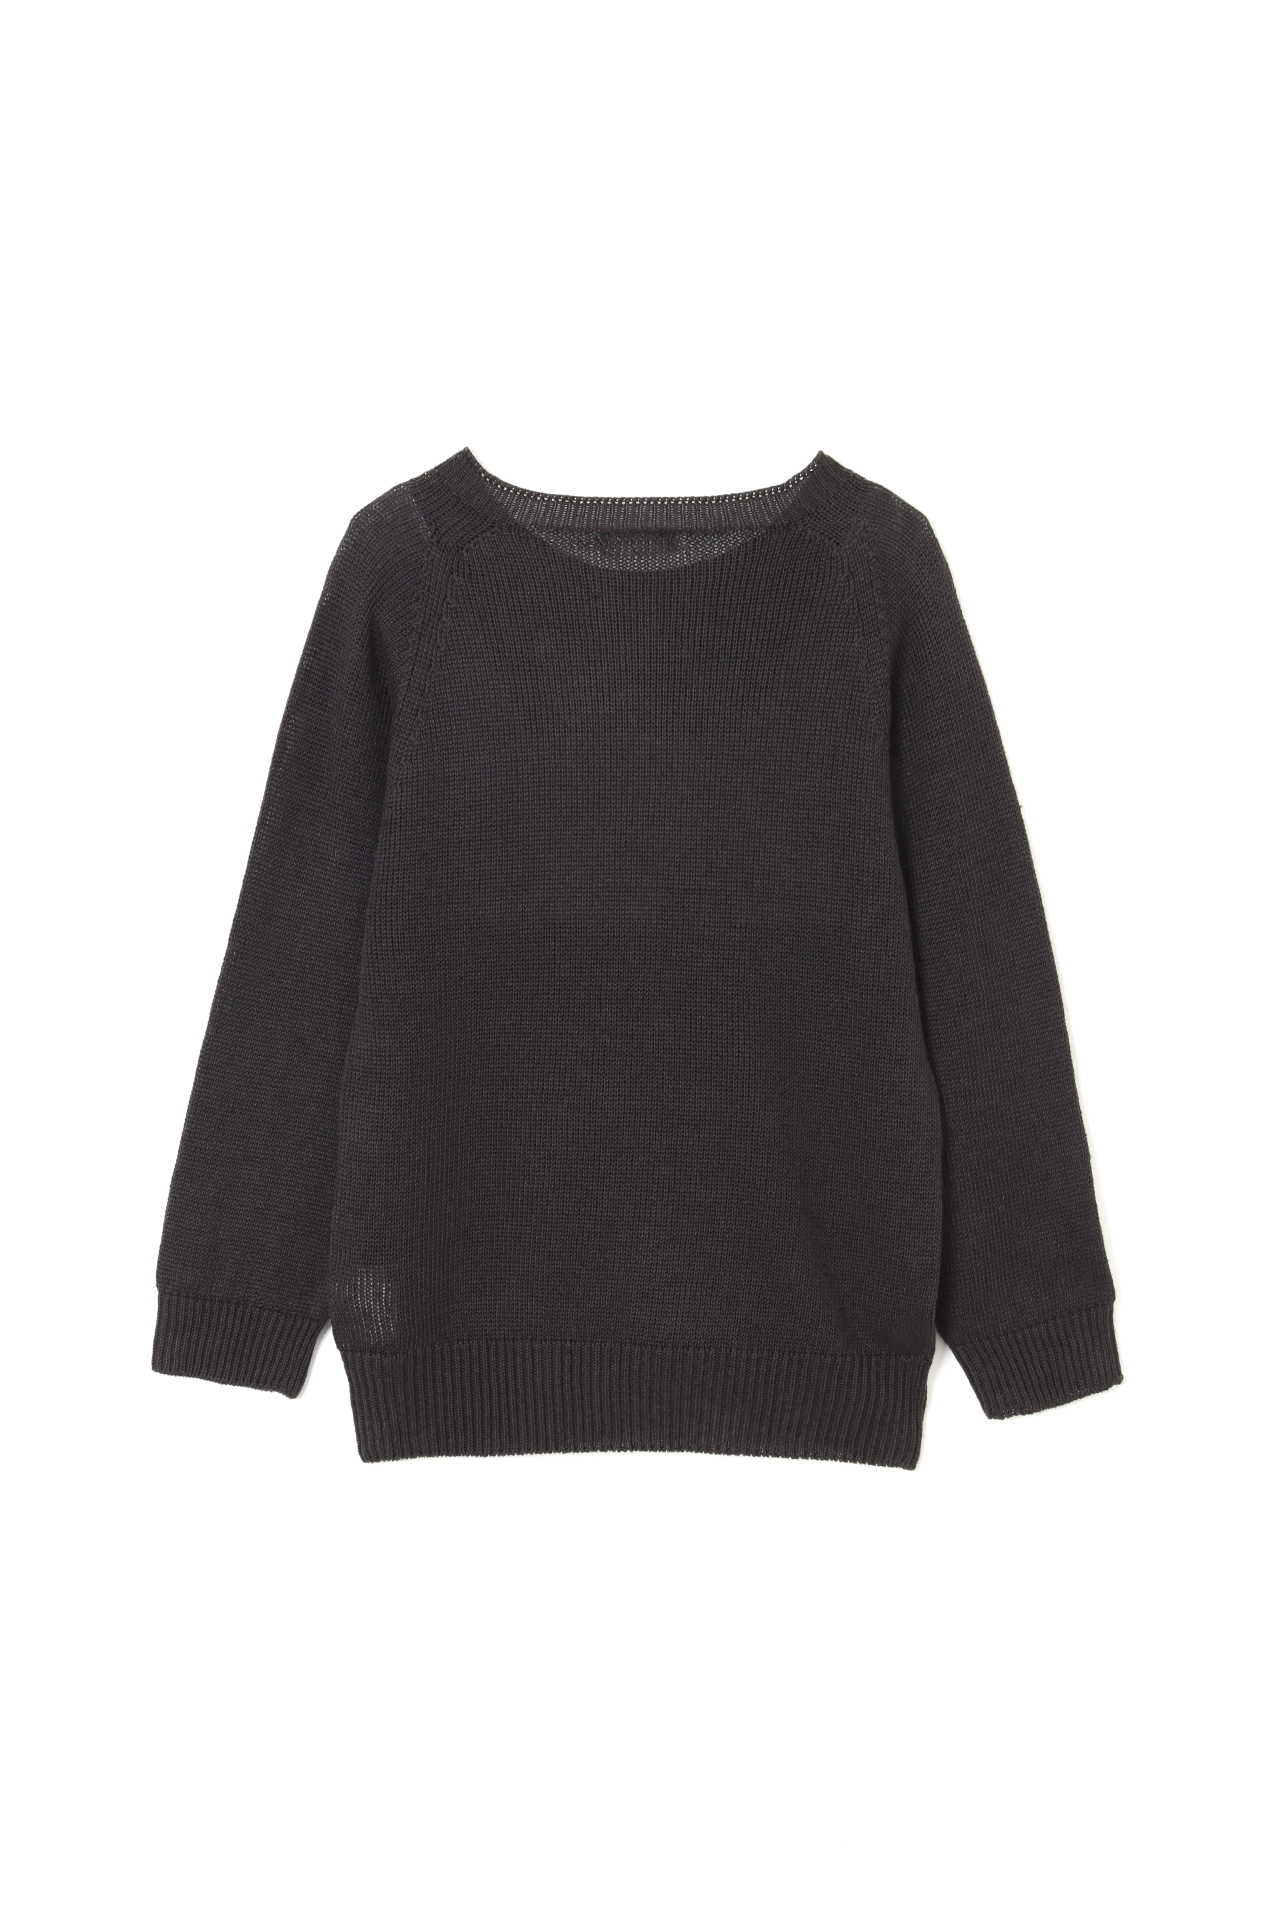 LINEN COTTON CREW NECK2